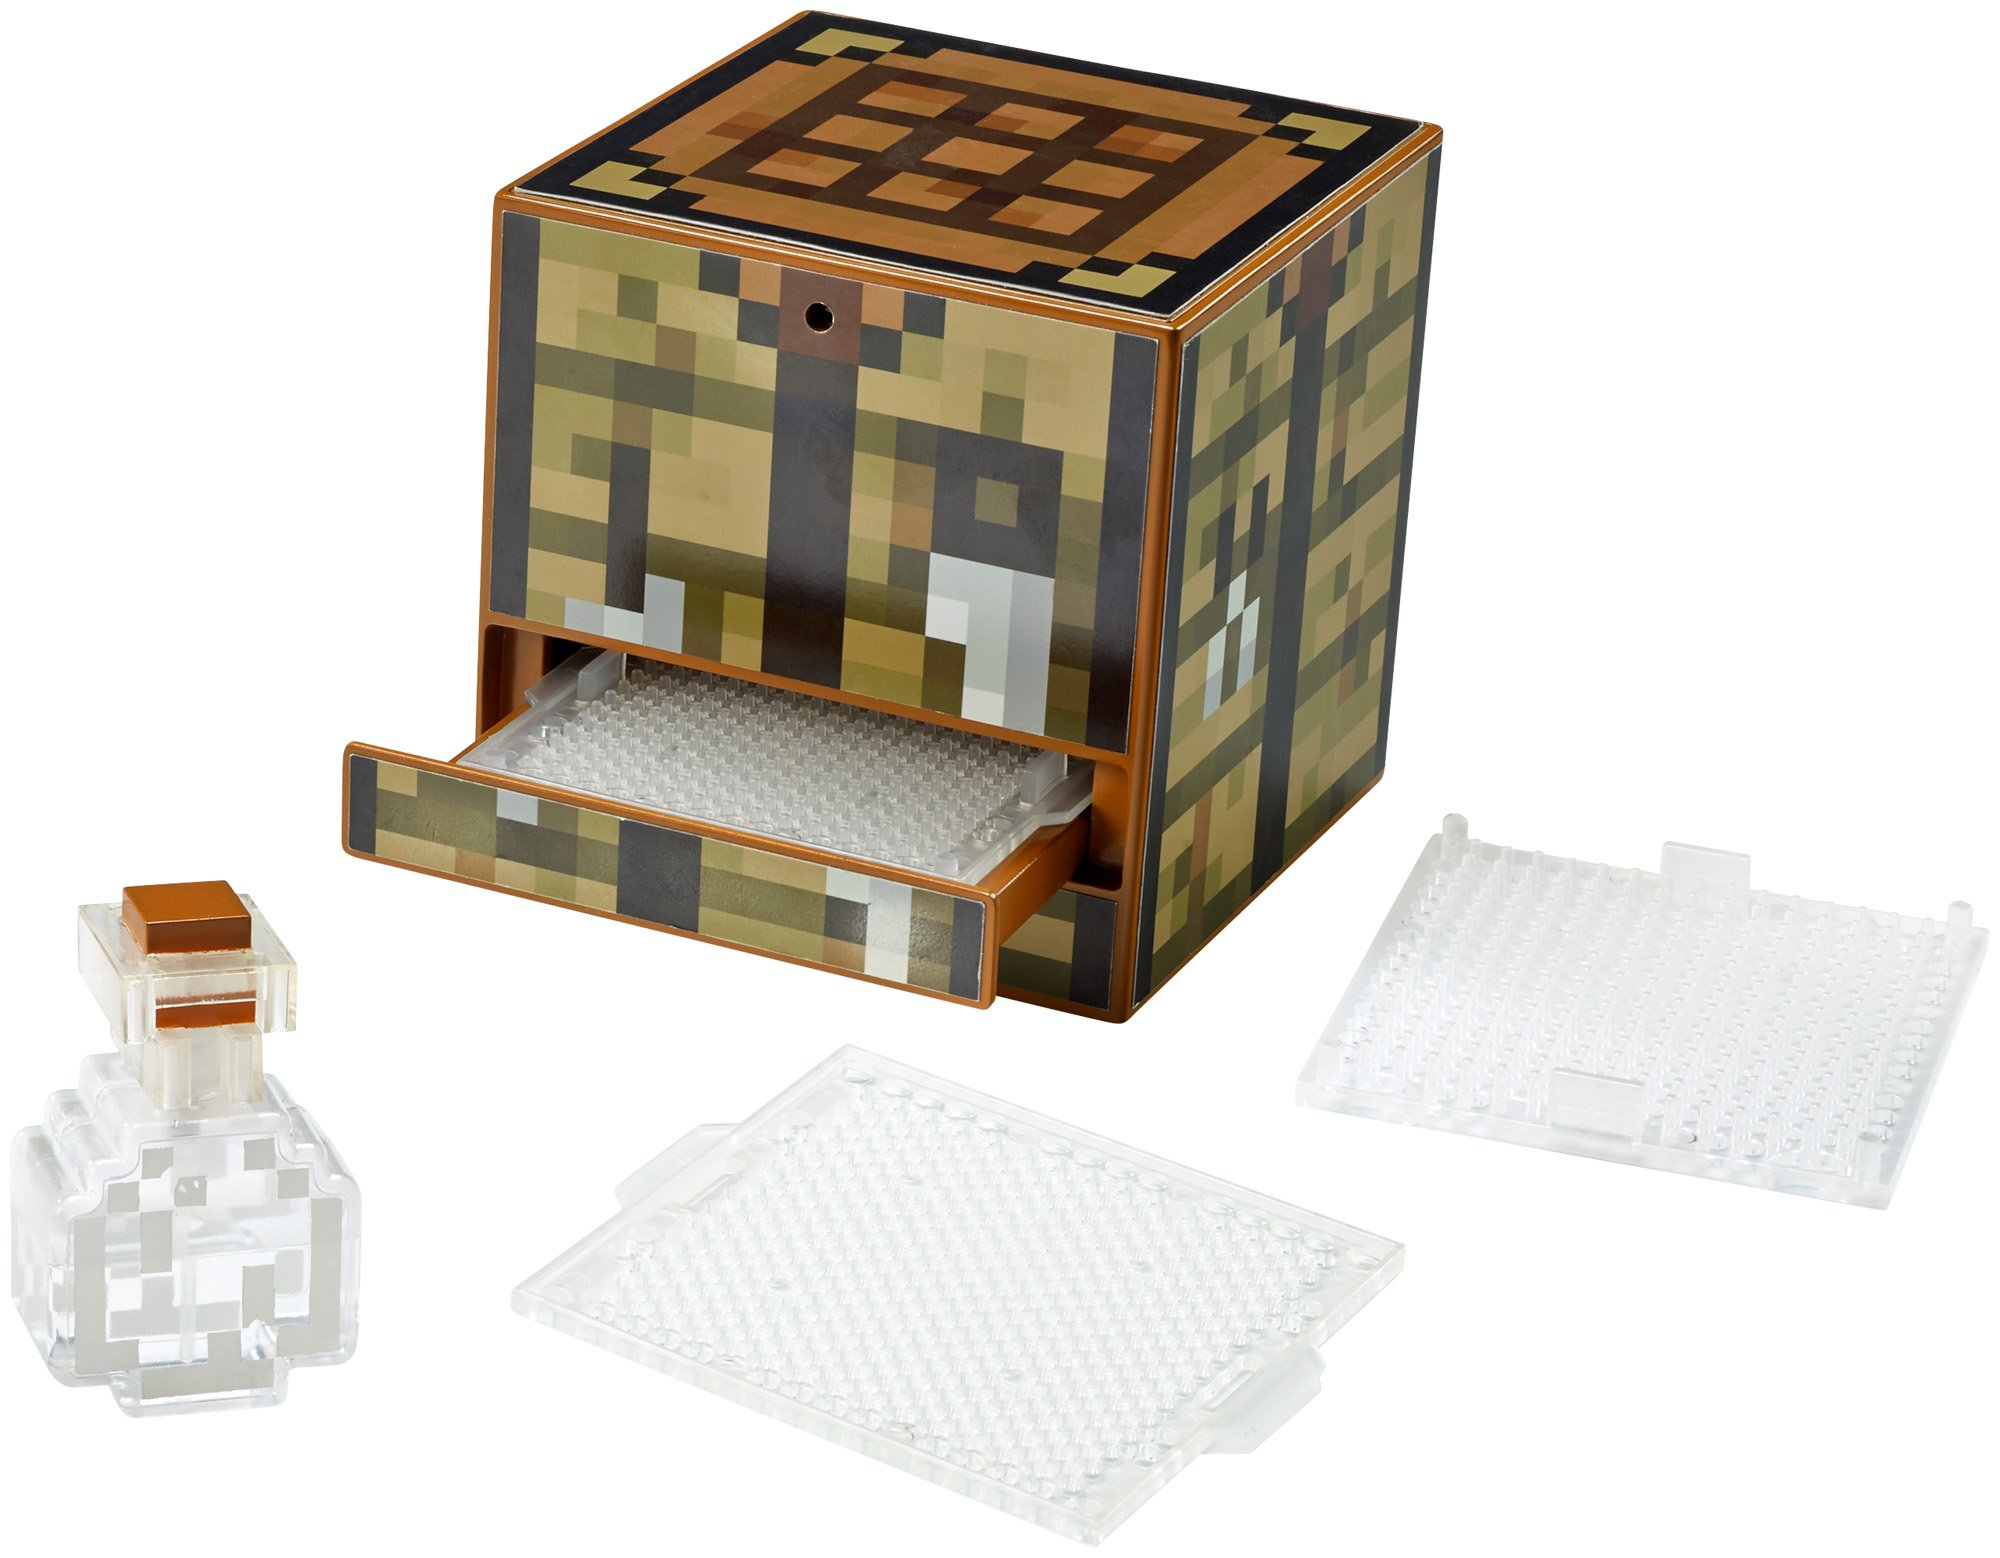 Mattel minecraft crafting table cjm12 with 10 different templates inventive kit ebay - Crafting table on minecraft ...